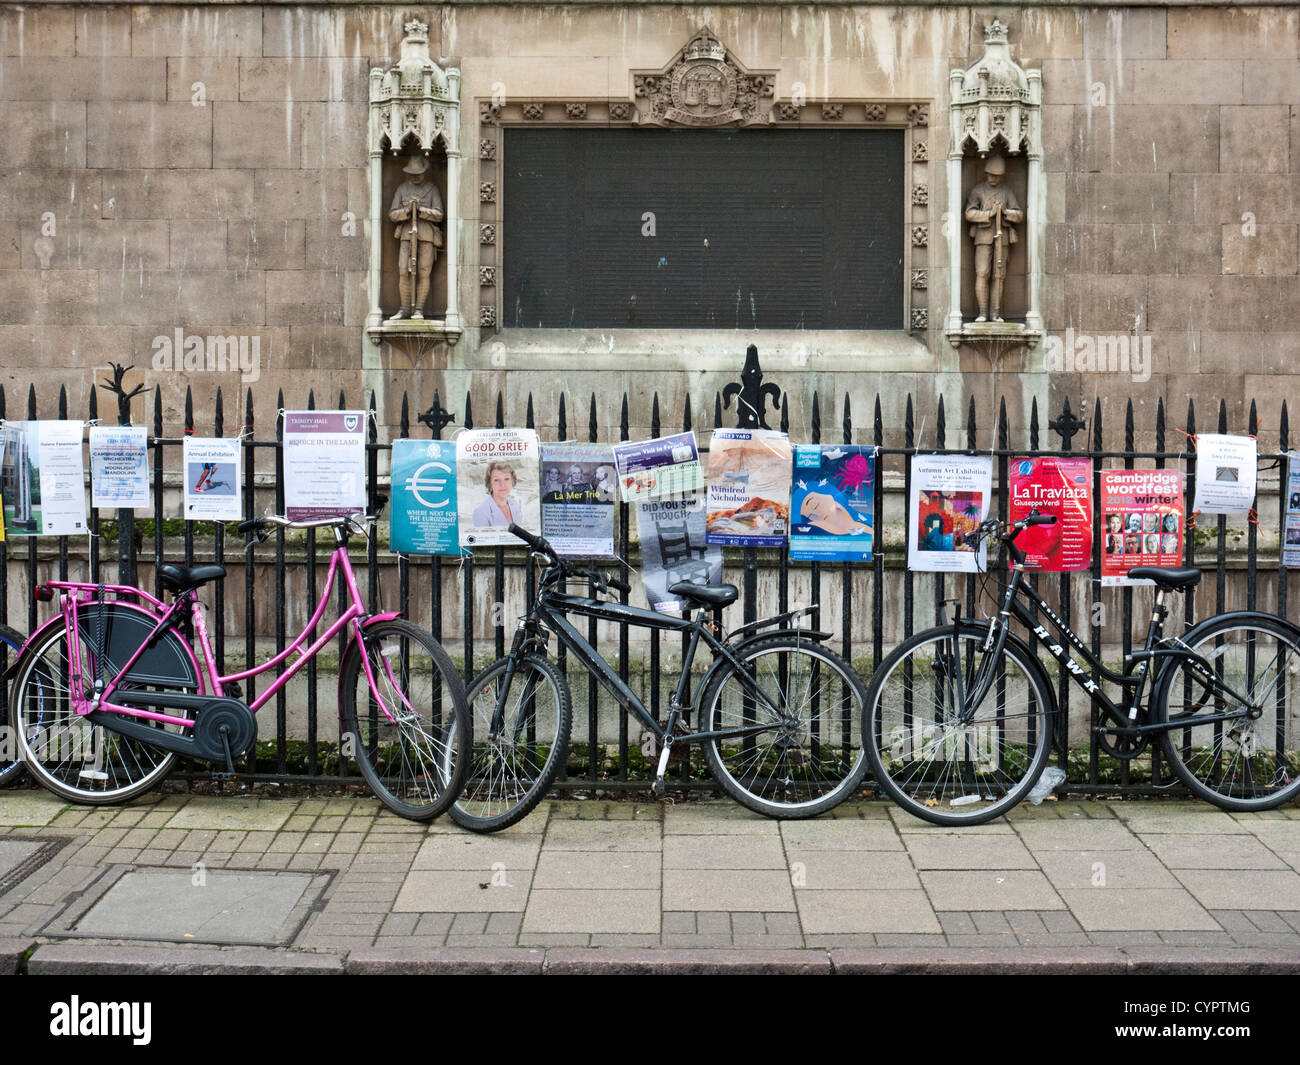 Bikes leaning against the fence outside of Great St. Mary's Church, Cambridge - Stock Image